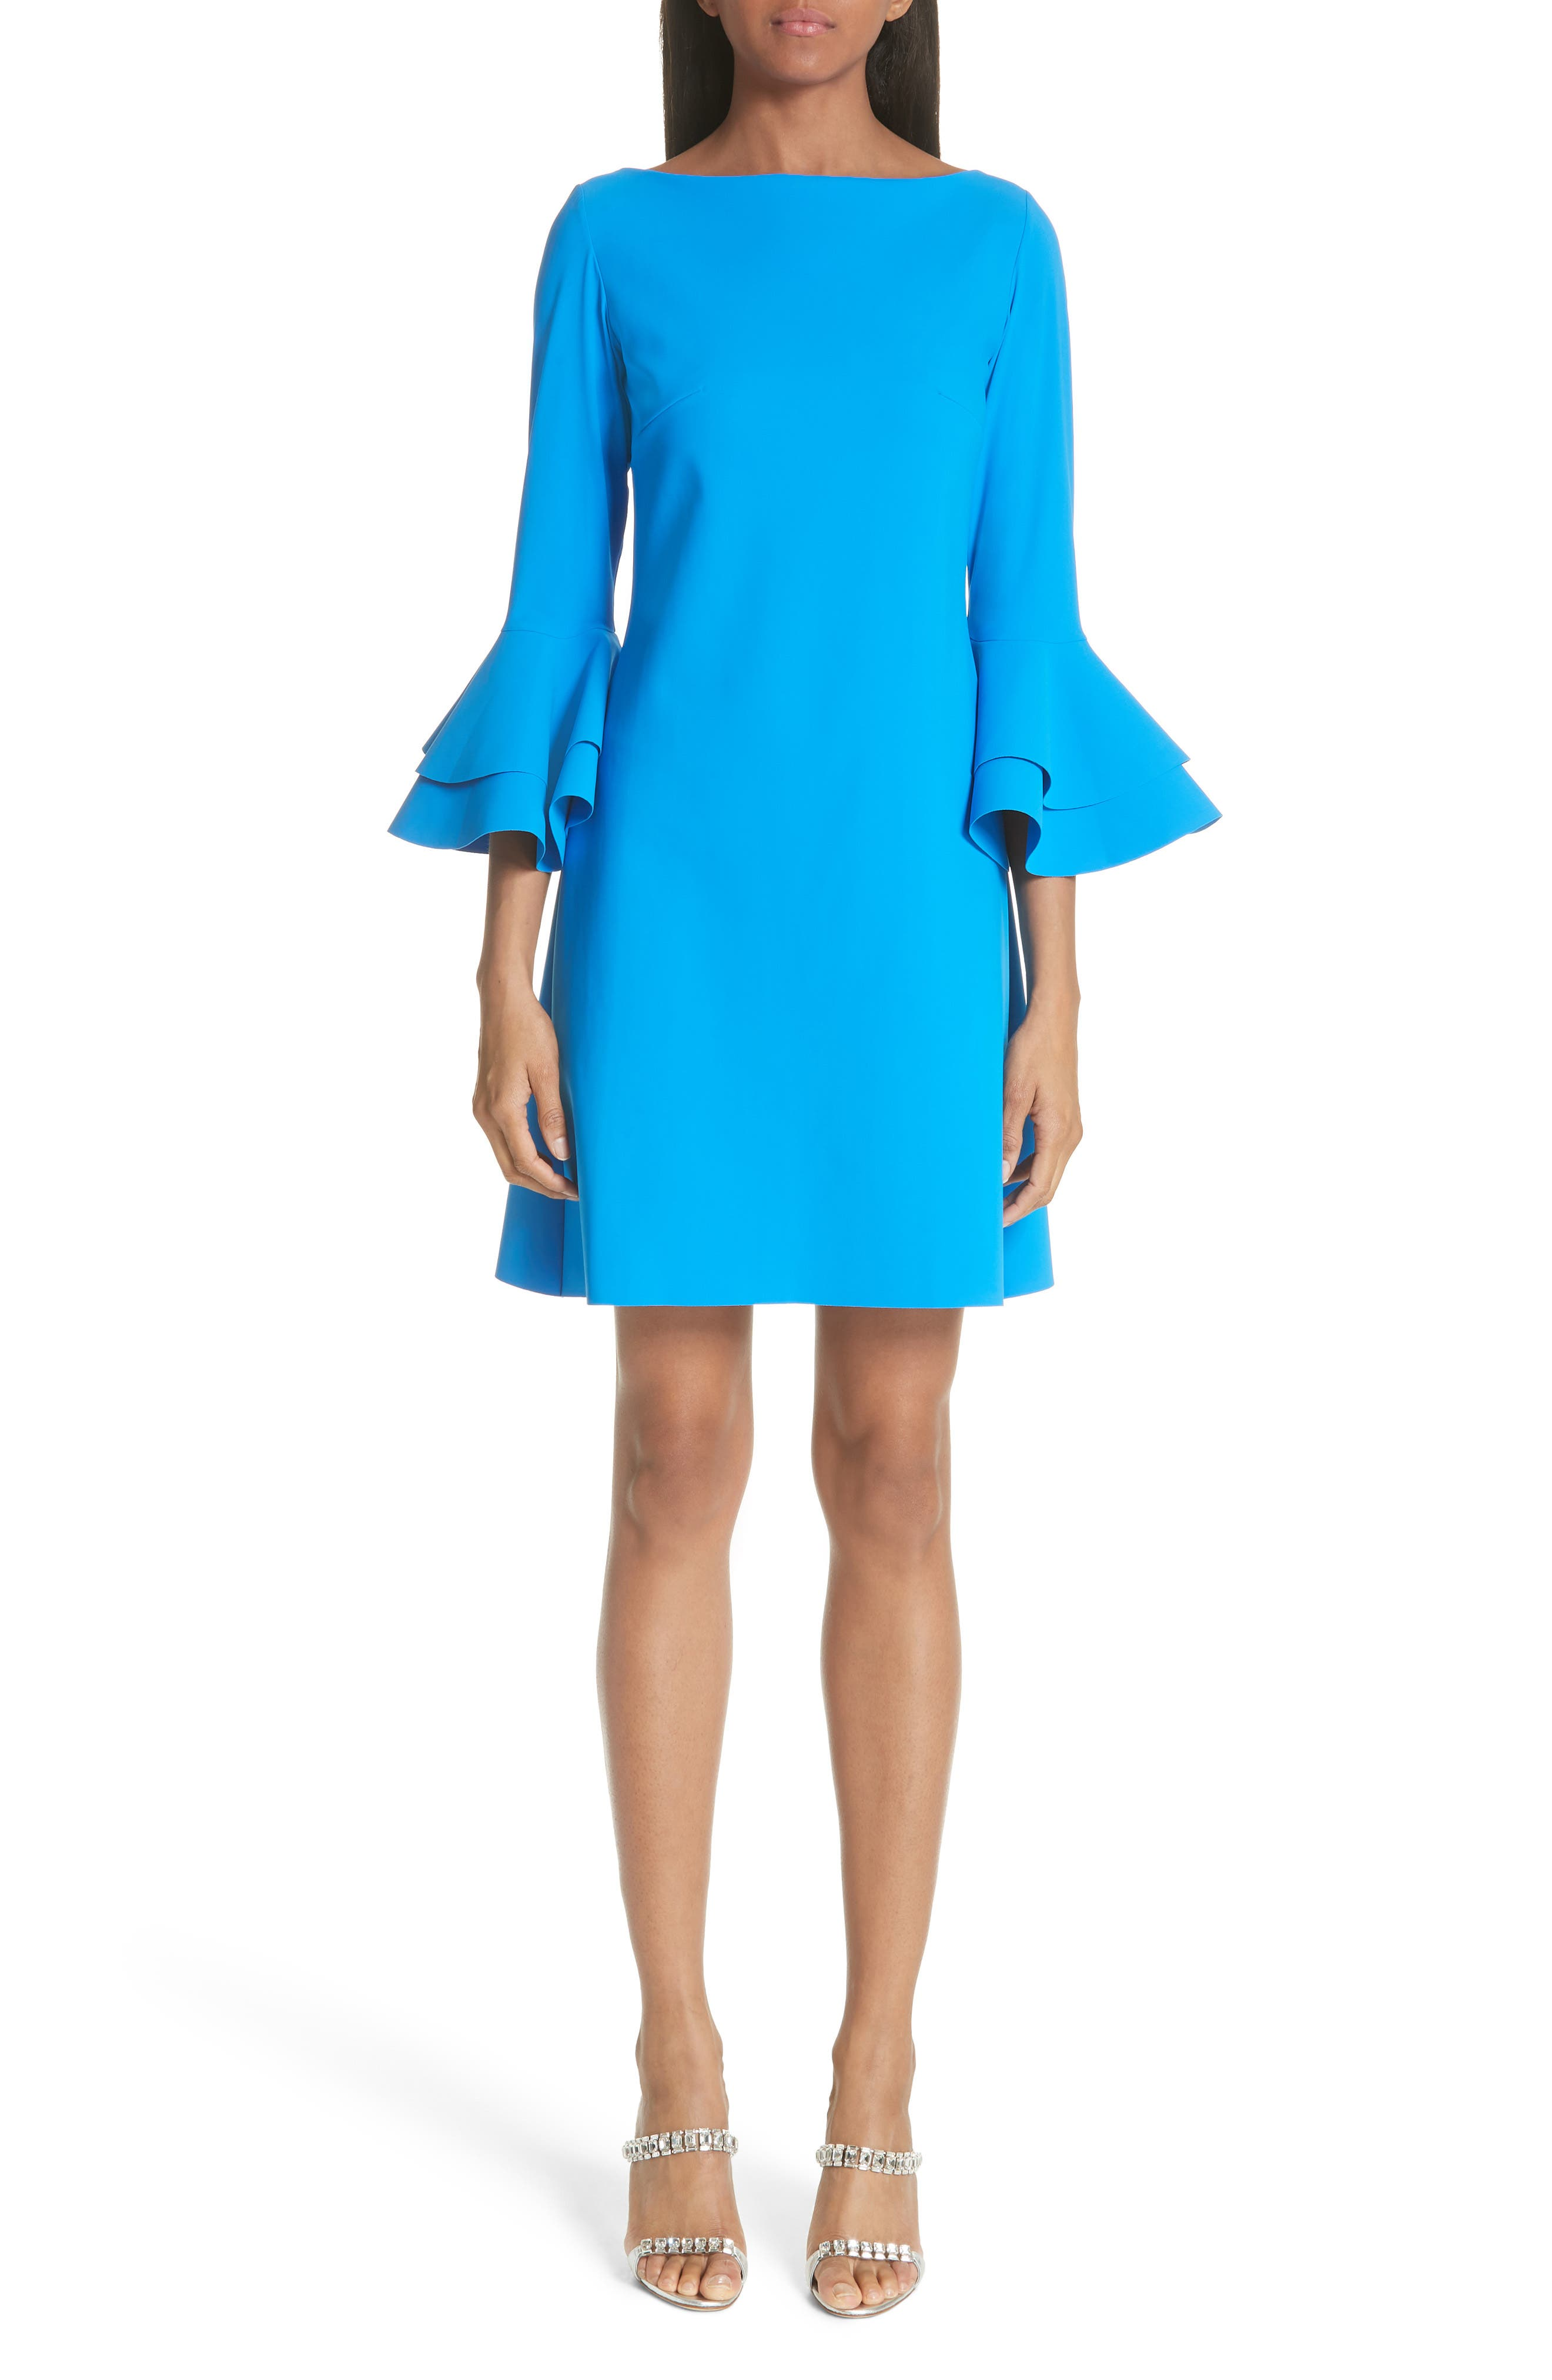 Chiara Boni La Petite Robe Natalia Bell Sleeve Cocktail Dress, US / 40 IT - Blue